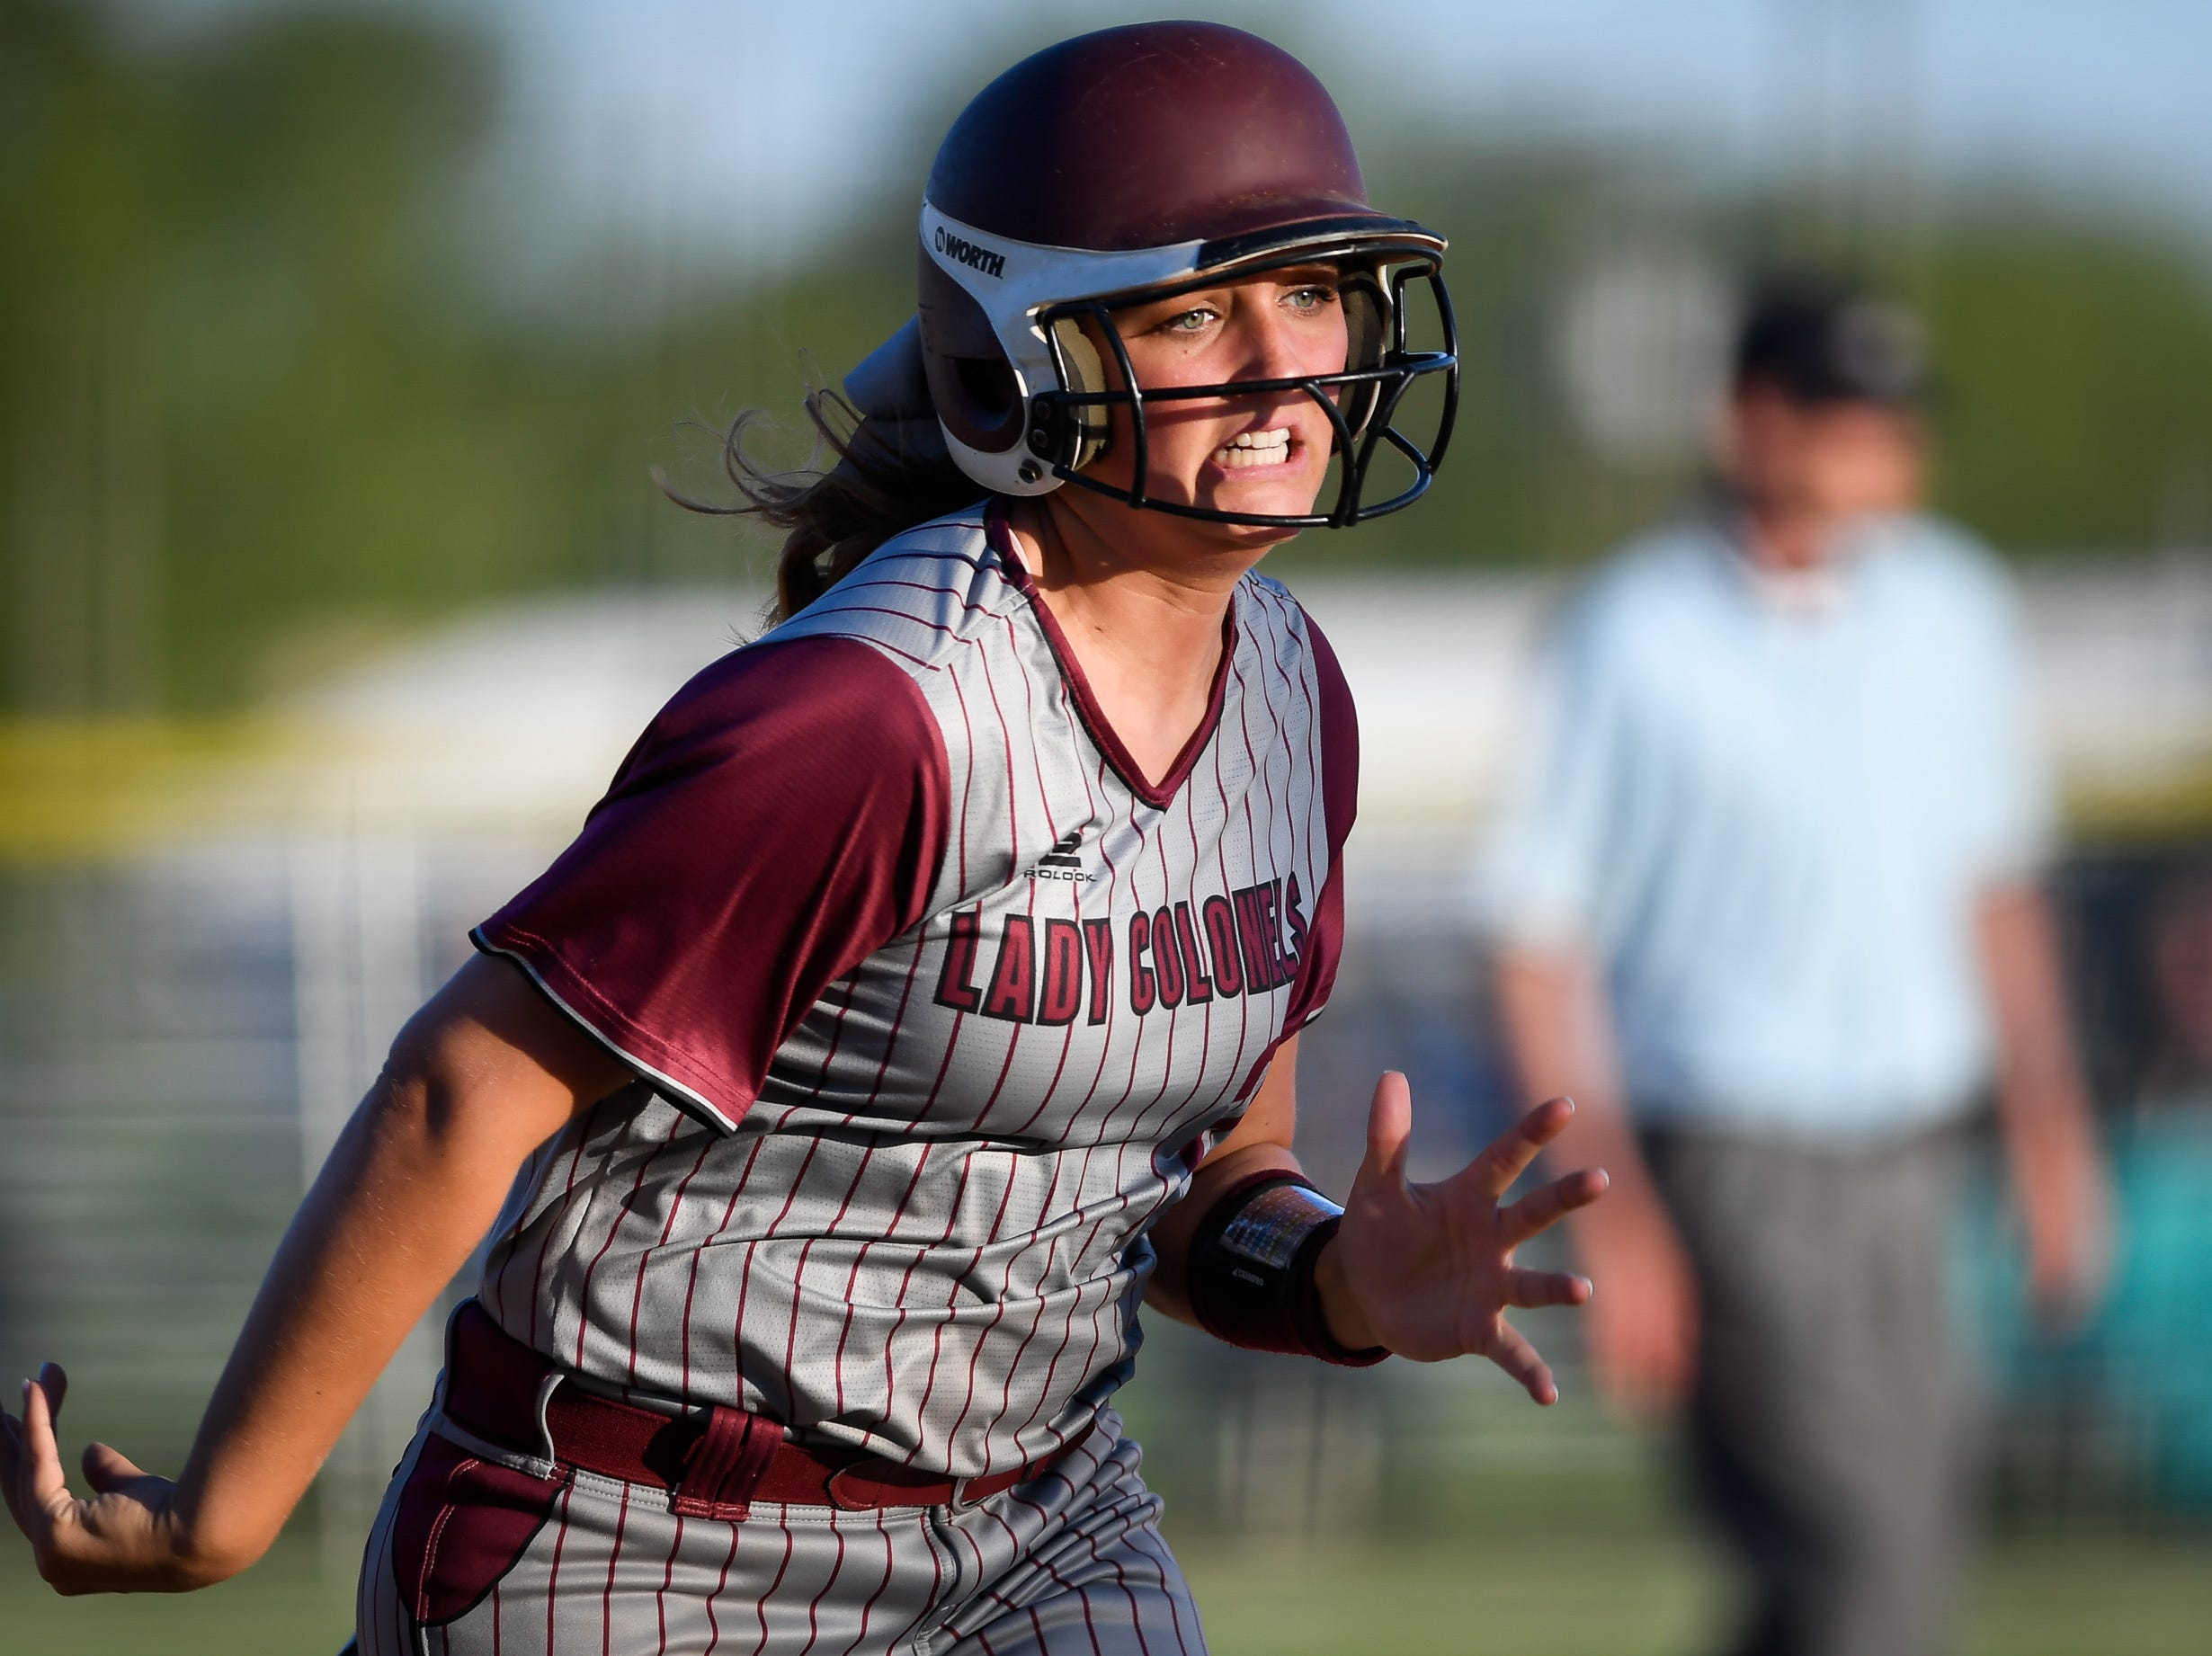 Henderson County's Hattie Hartman (27) runs down the third base line to score in the fourth inning as district rivals the Webster County Lady Trojans play the Henderson County Lady Colonels at Henderson's North Field Friday, April 26, 2019.